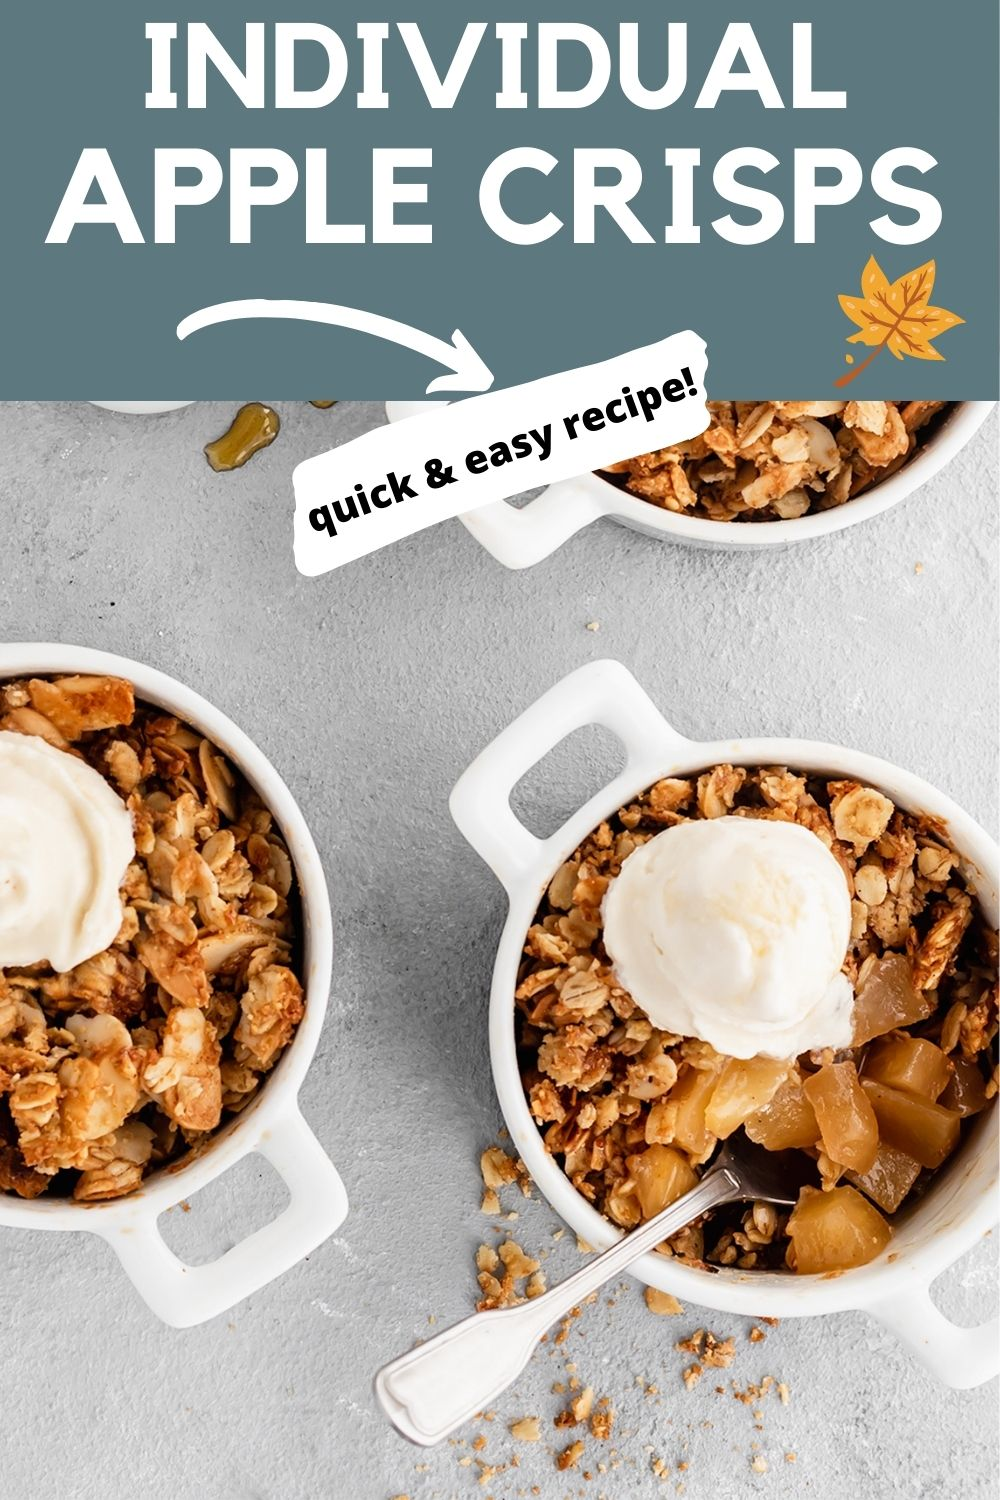 Easy Individual Apple Crisps: Serve them warm with ice cream and perhaps a drizzle of caramel sauce for a quick and delicious dessert!